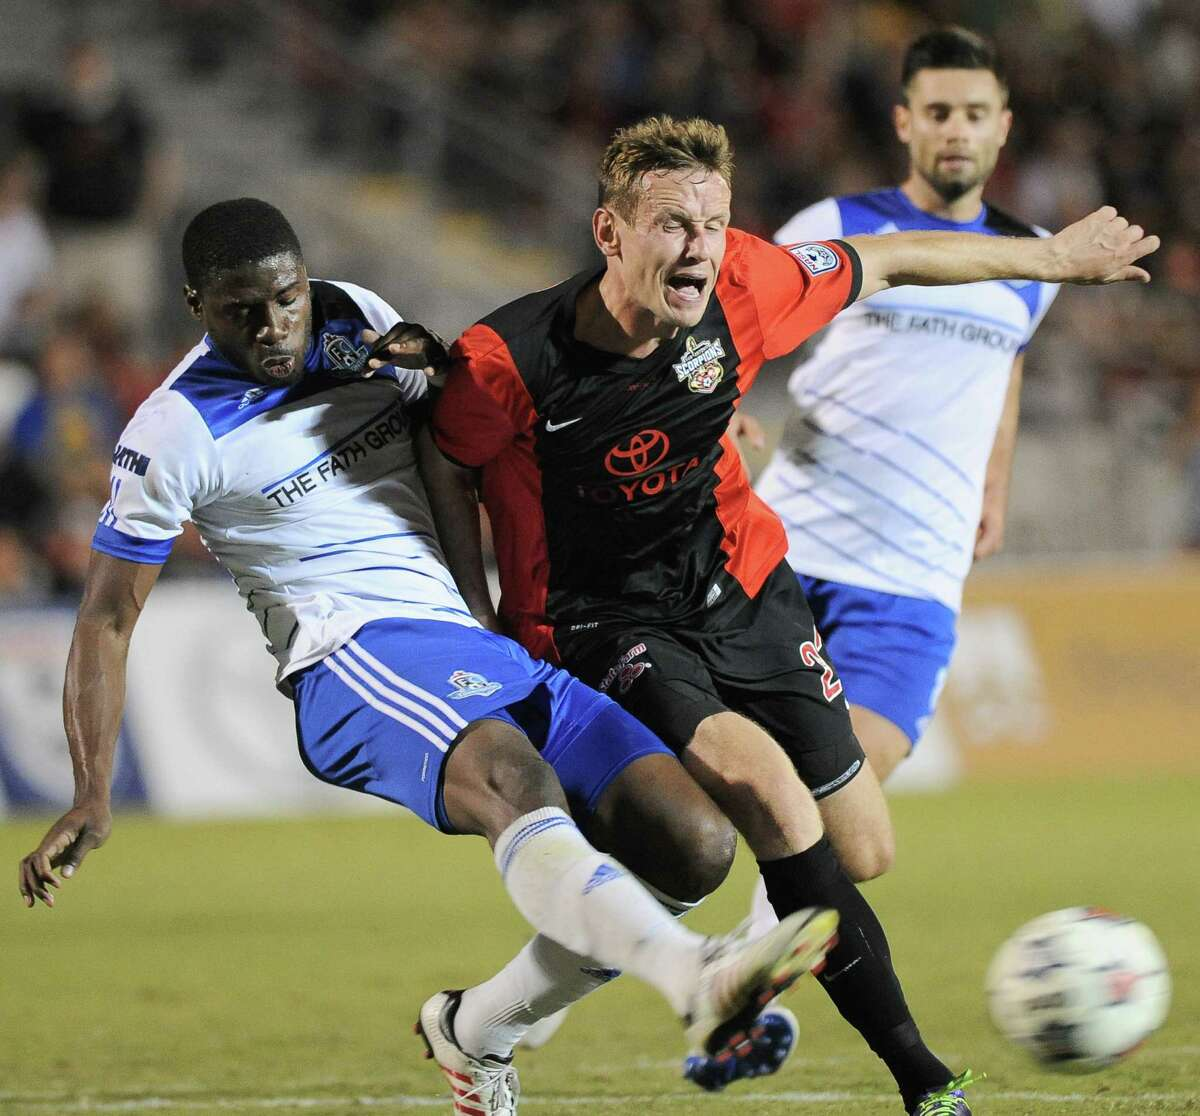 The Scorpions' Tomasz Zahorski (right) battles with Edmonton's Kareem Moses (left) during the second half at Toyota Field. The Scorpions were blanked for the third time in six games.